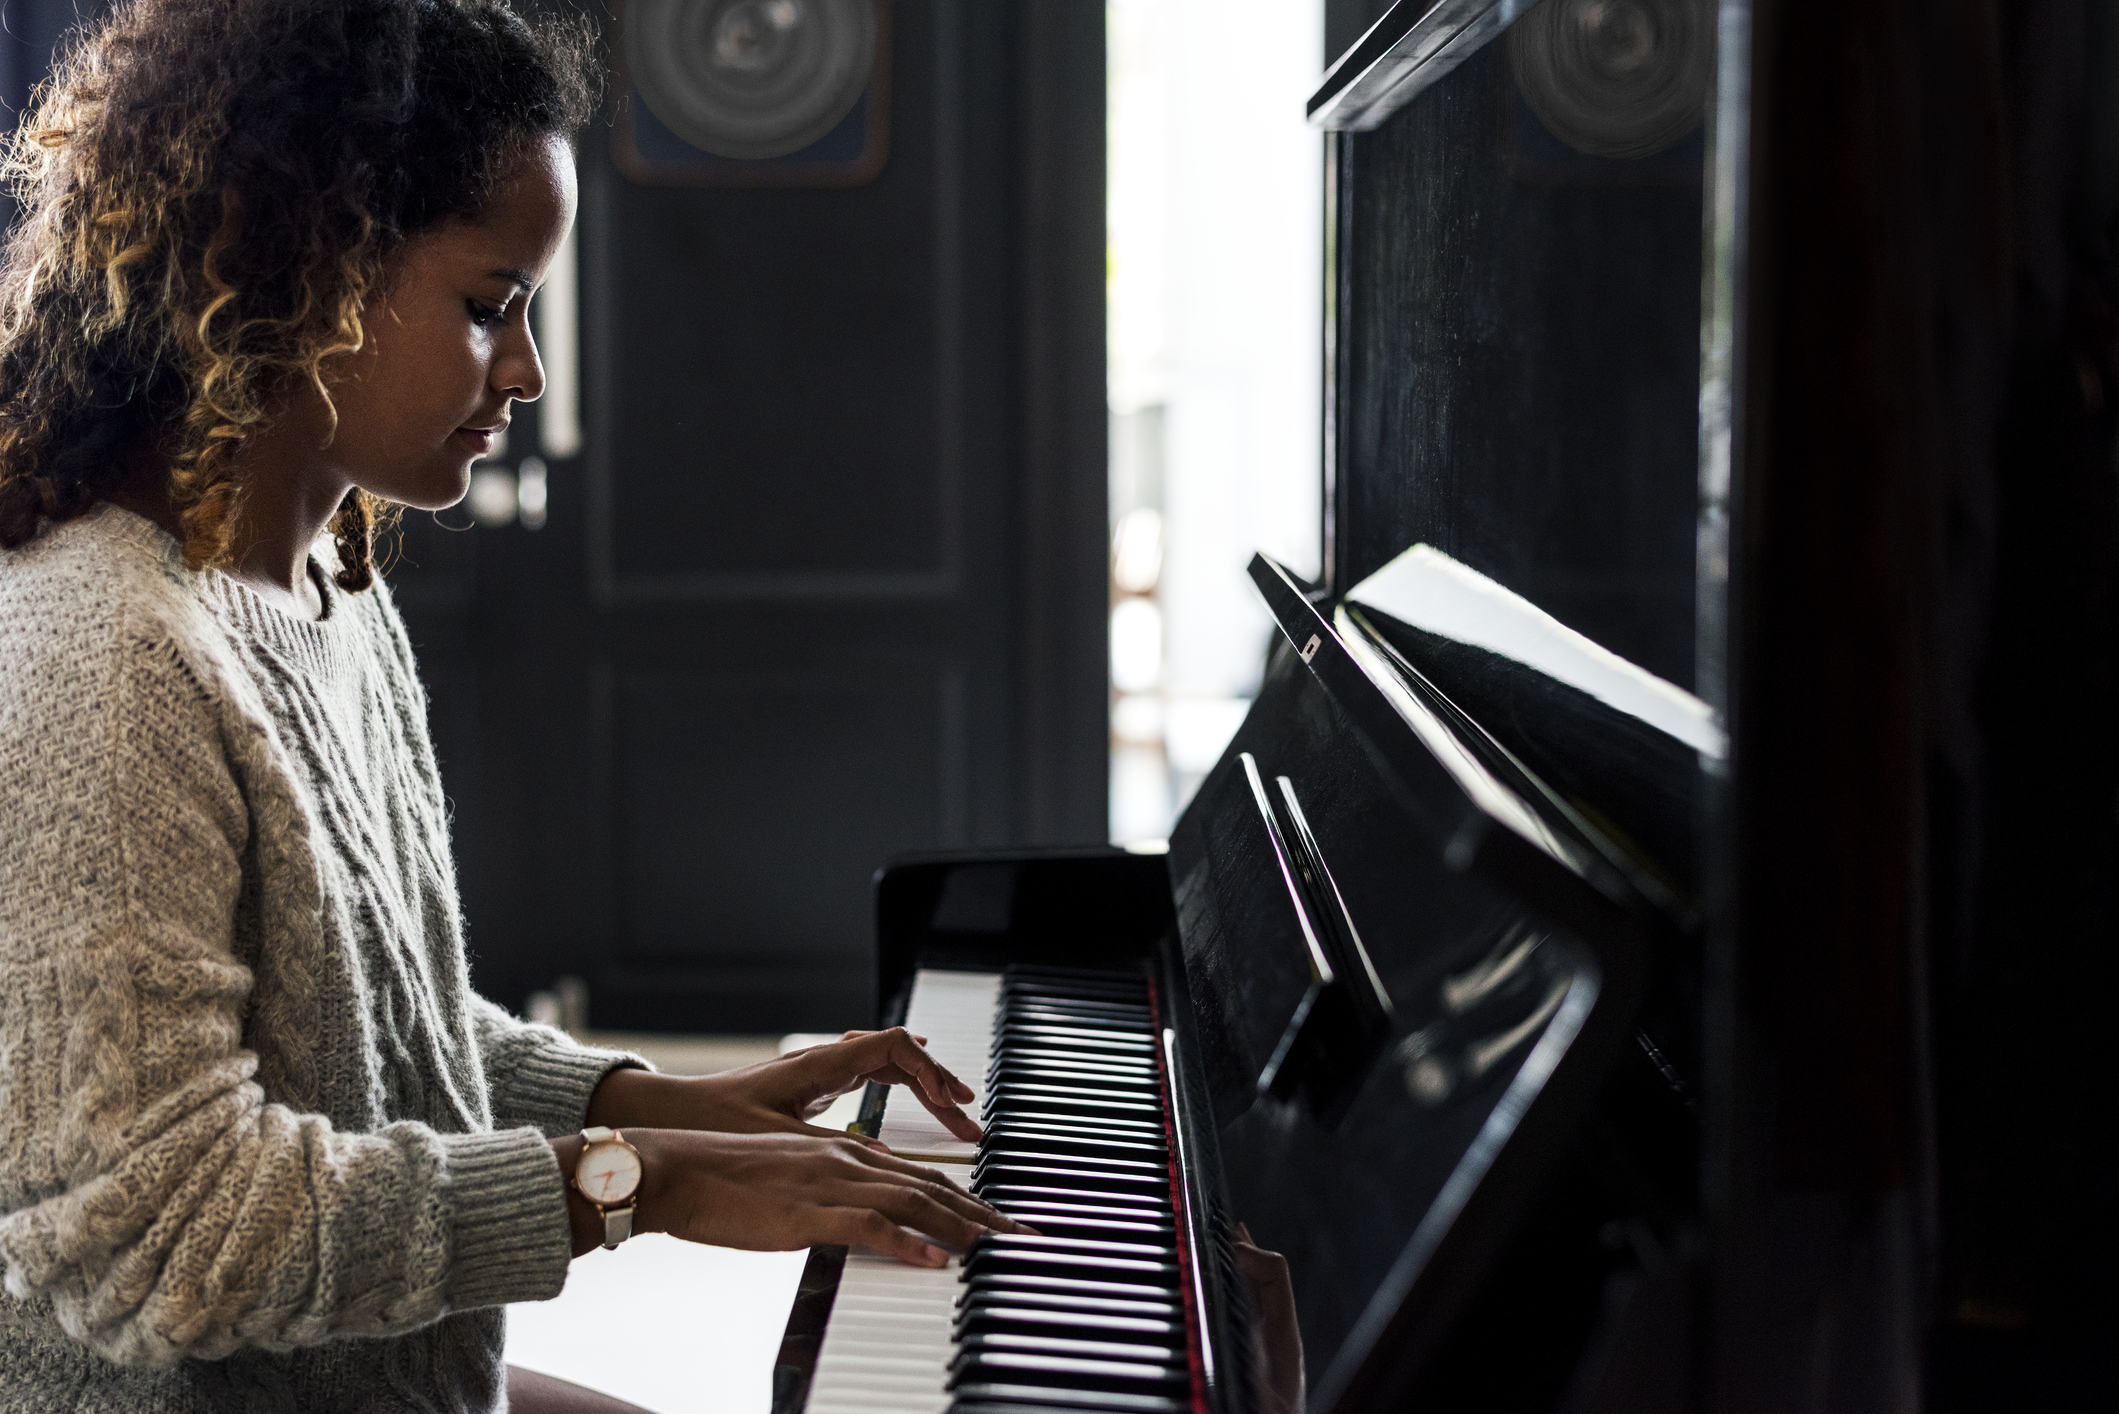 City creates $500,000 music fund for female singers, writers